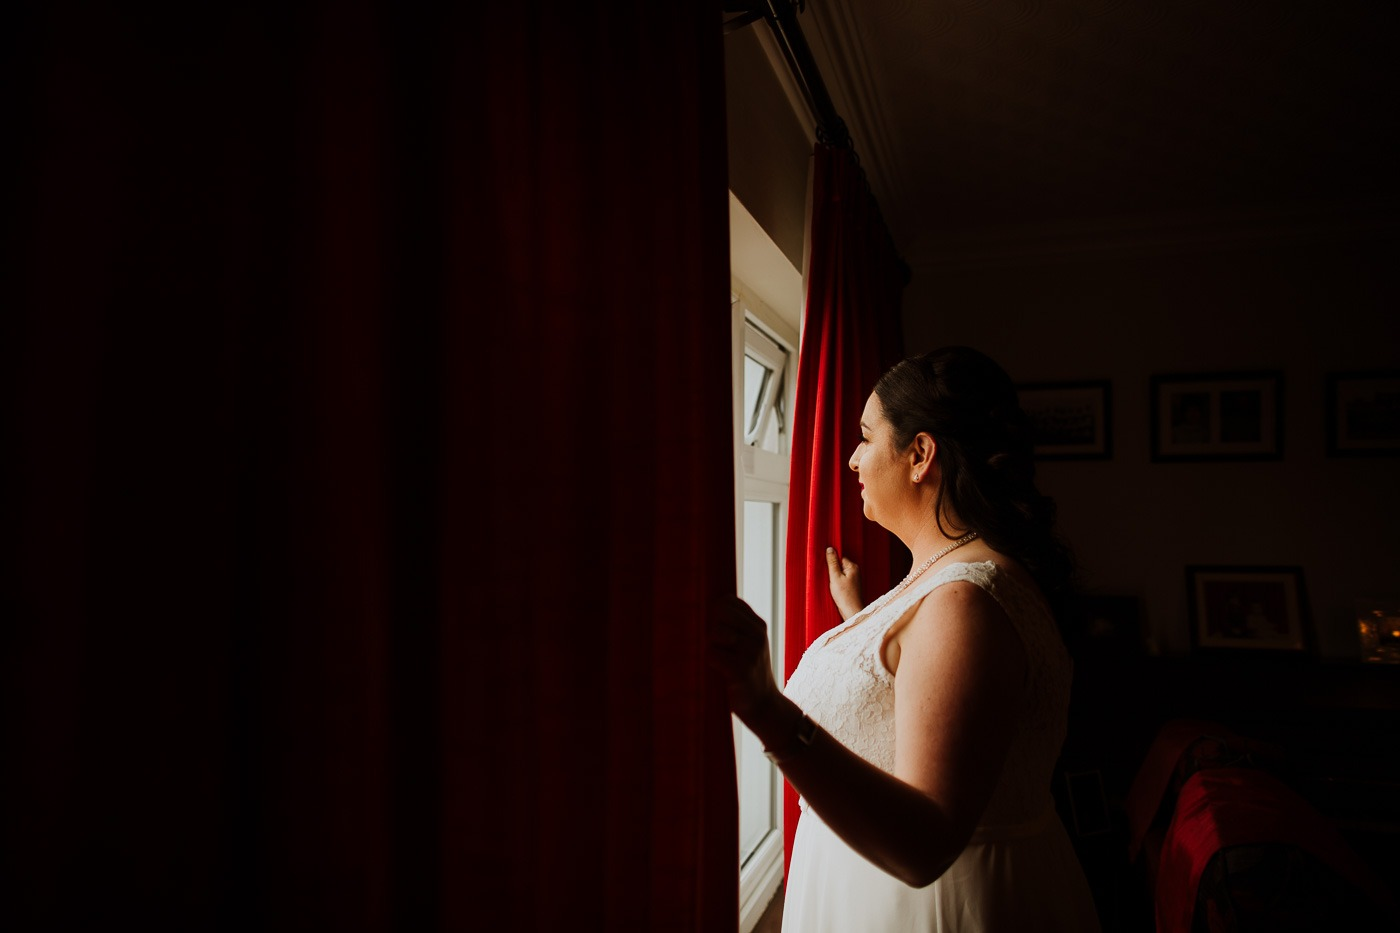 A woman standing in a dark room